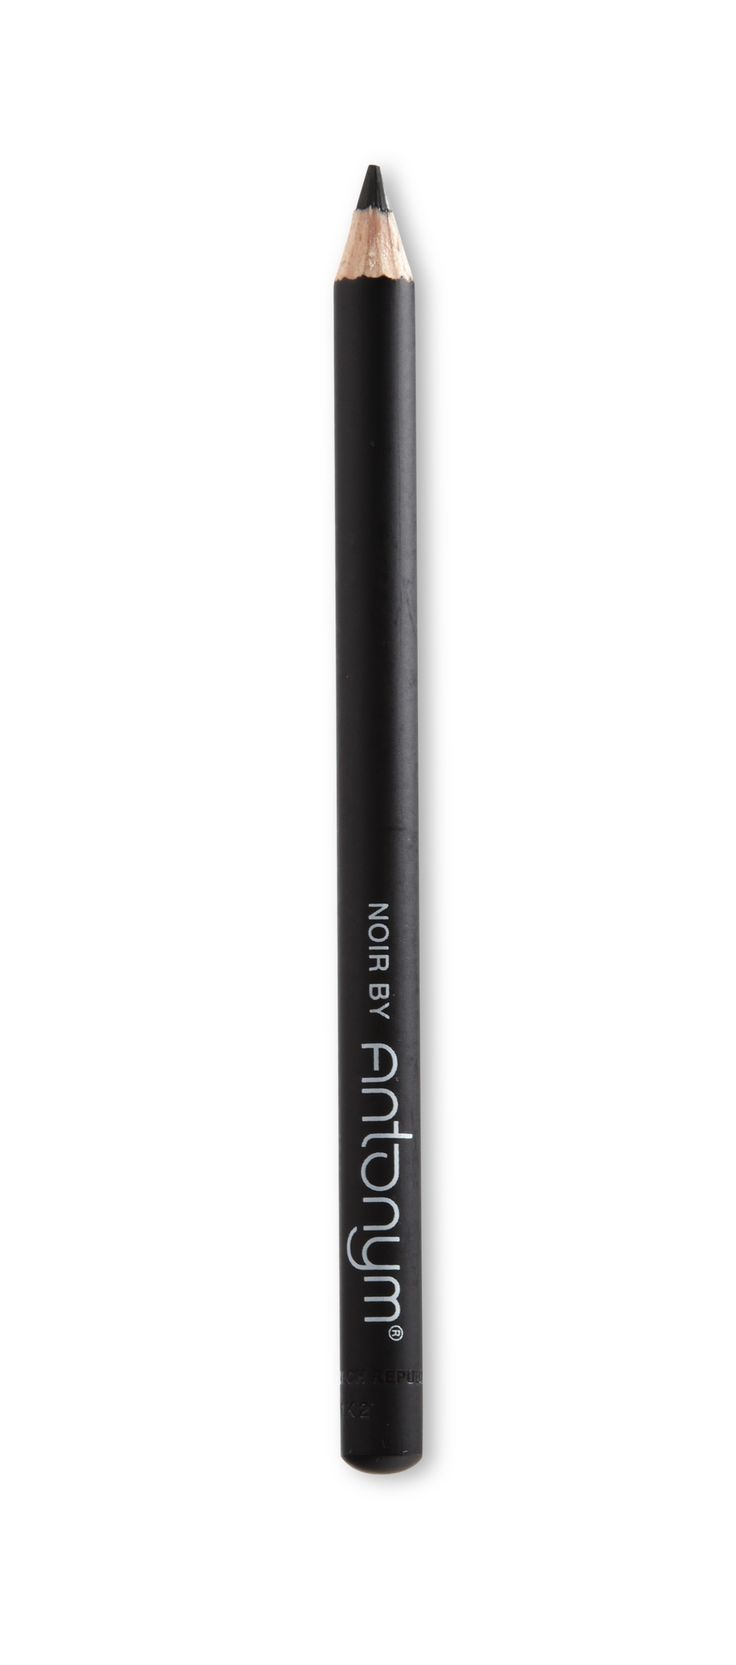 """Soft, smudgy, and """"blacker than black,"""" according to one of our panelists, Antonym Noir eyeliner has been dermatologist tested and approved for use on the delicate waterline.   - ELLE.com"""